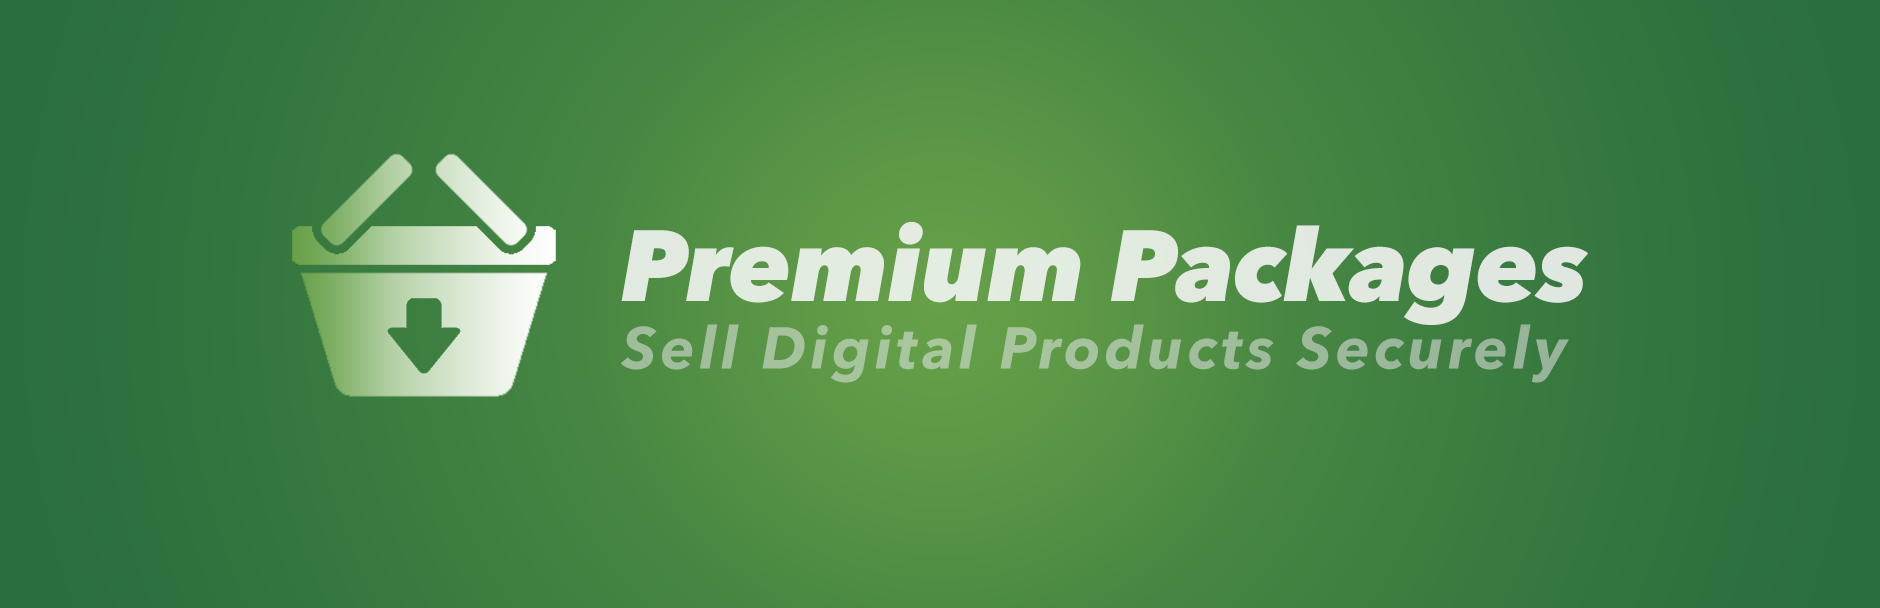 Premium Packages – Sell Digital Products Securely